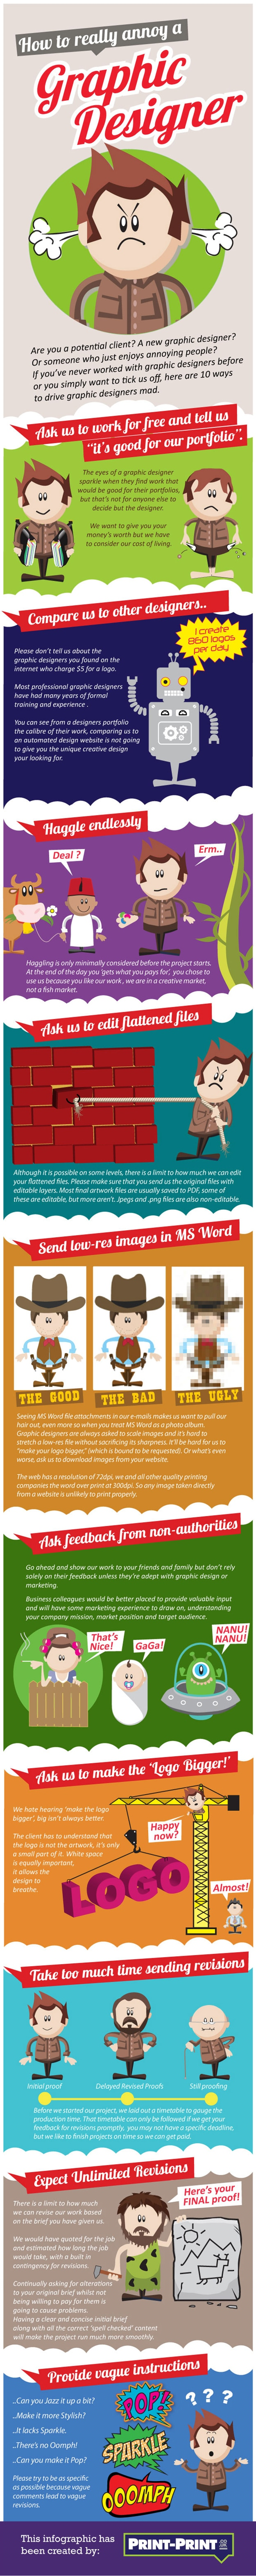 How To Really Annoy A Graphic Designer [Infographic]